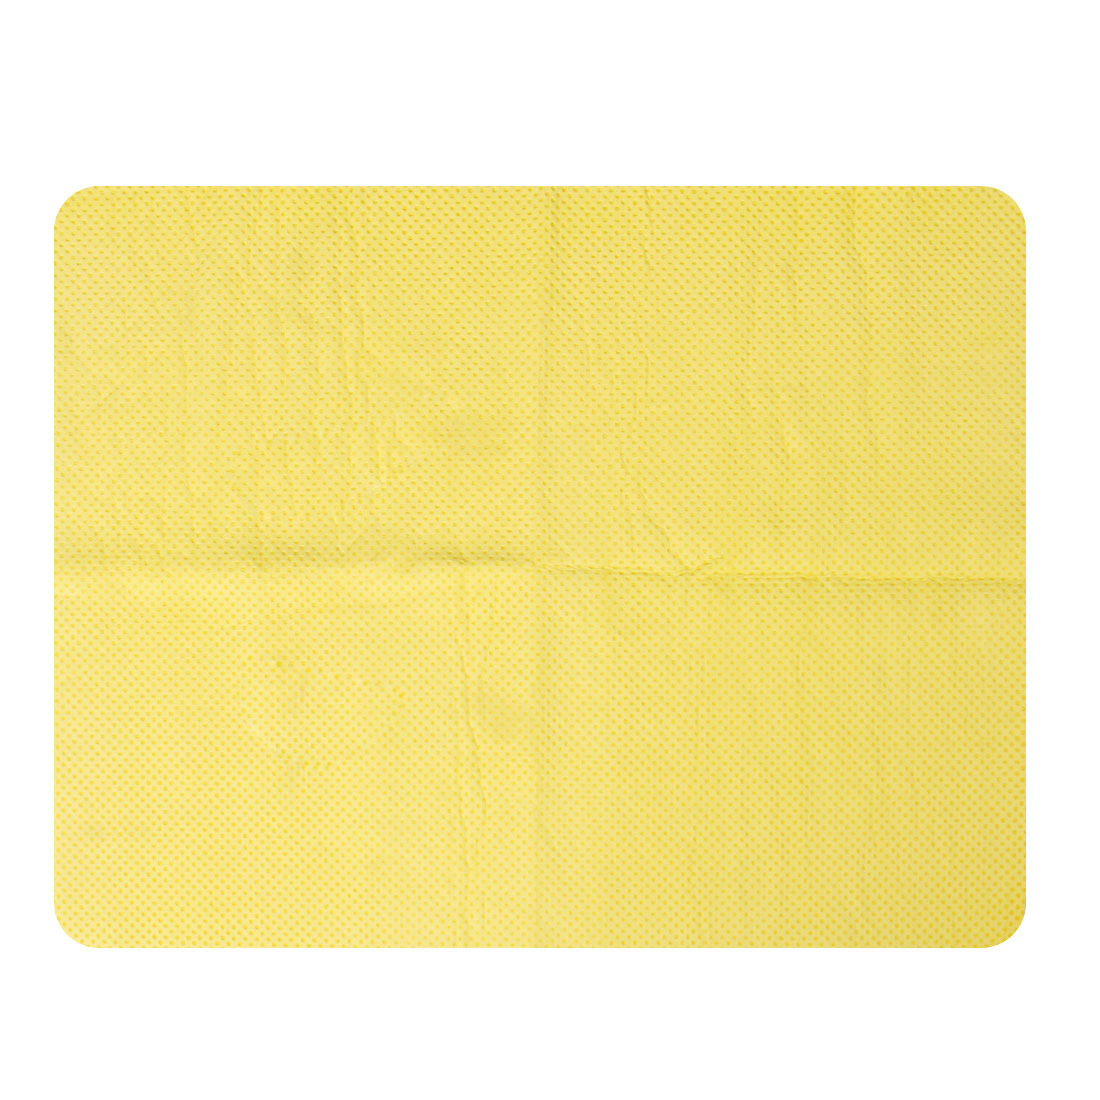 Synthetic Chamois Car Furniture Cleaning Yellow Clean Cham Towel